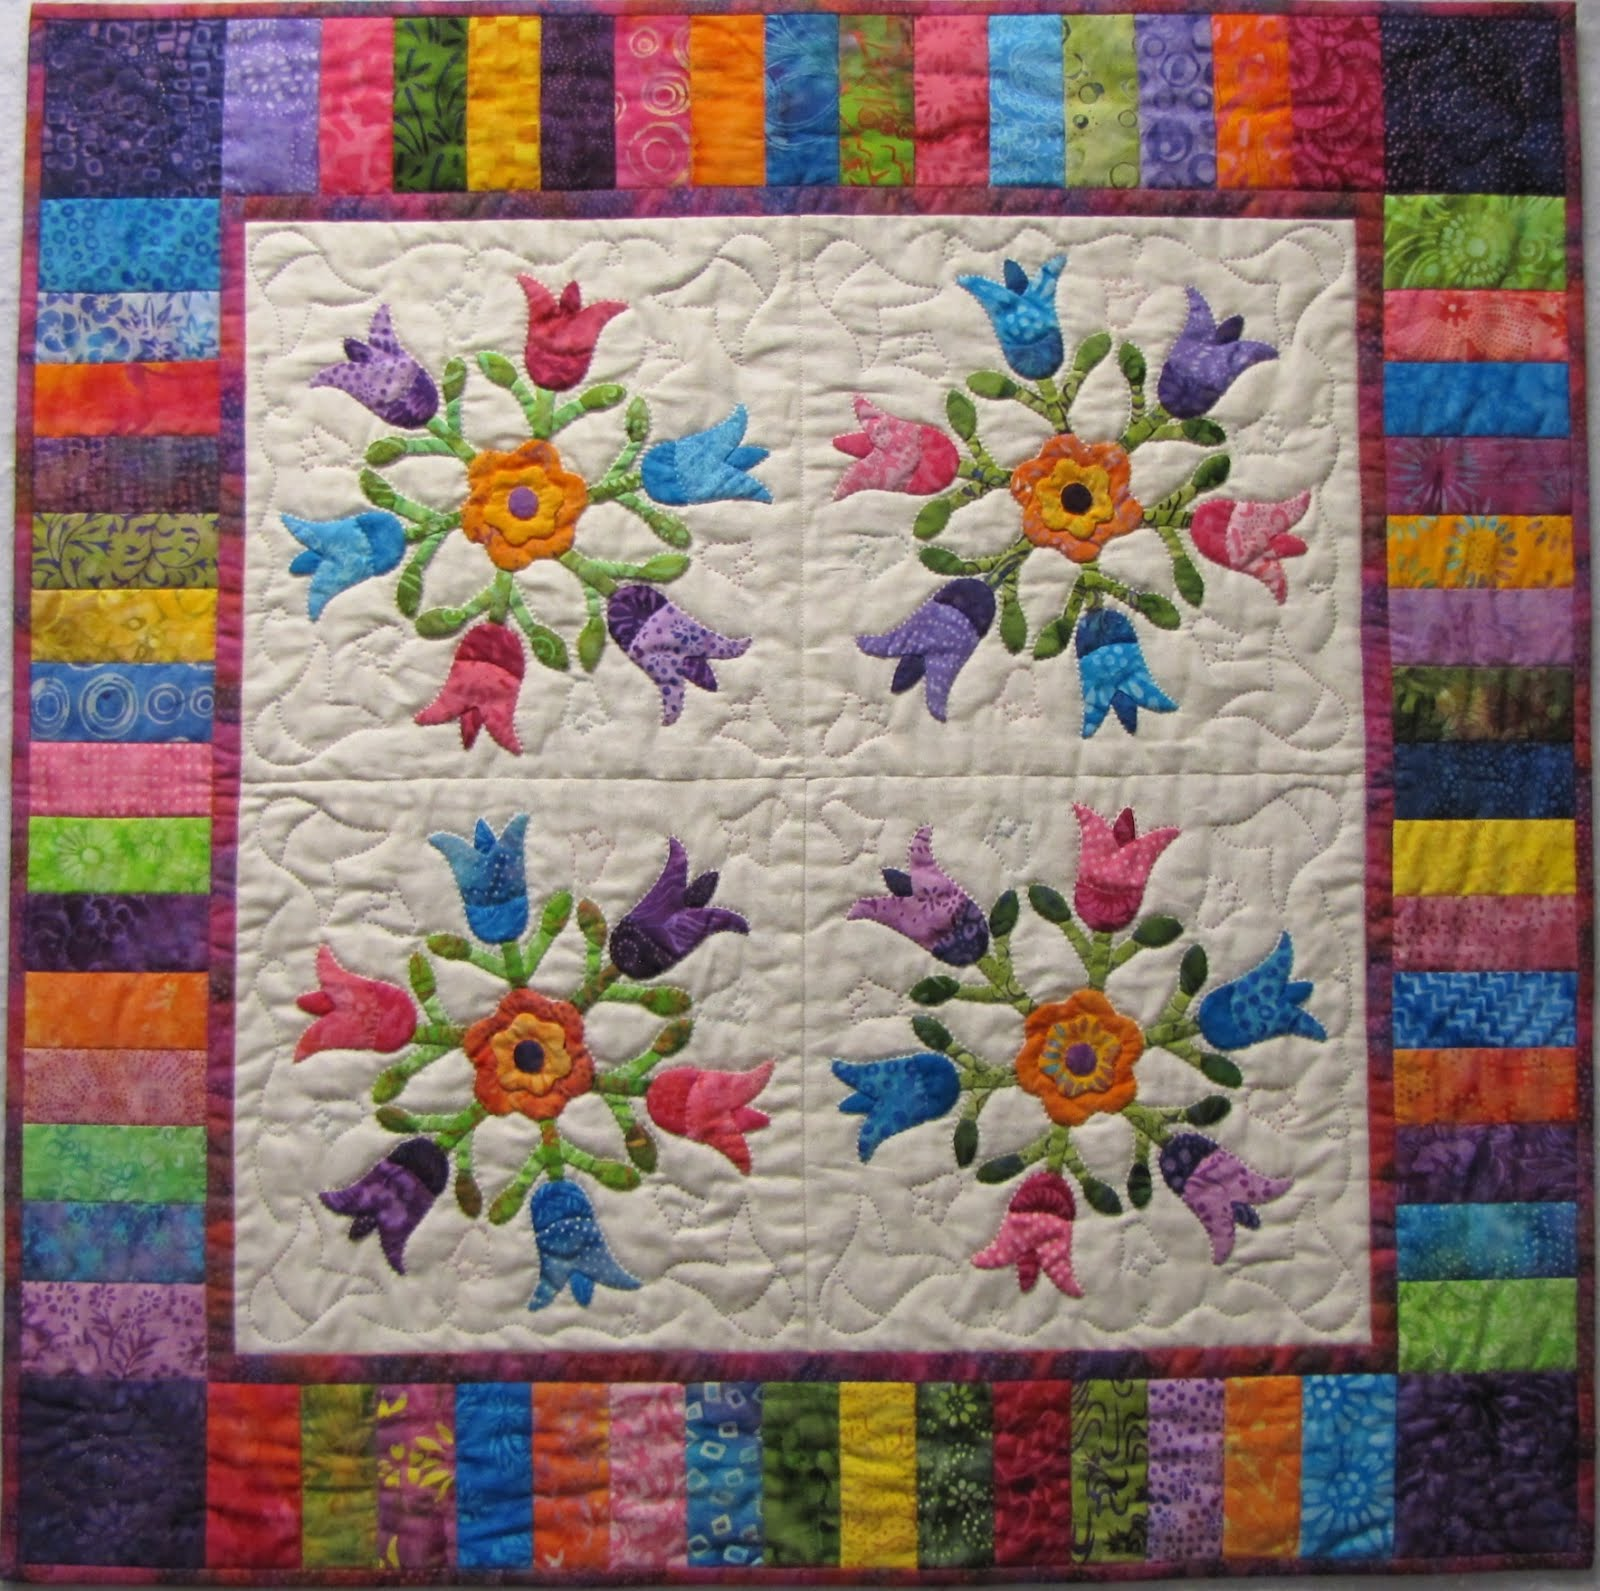 Textile time travels antique quilts and appraisals at for What to do with an old quilt